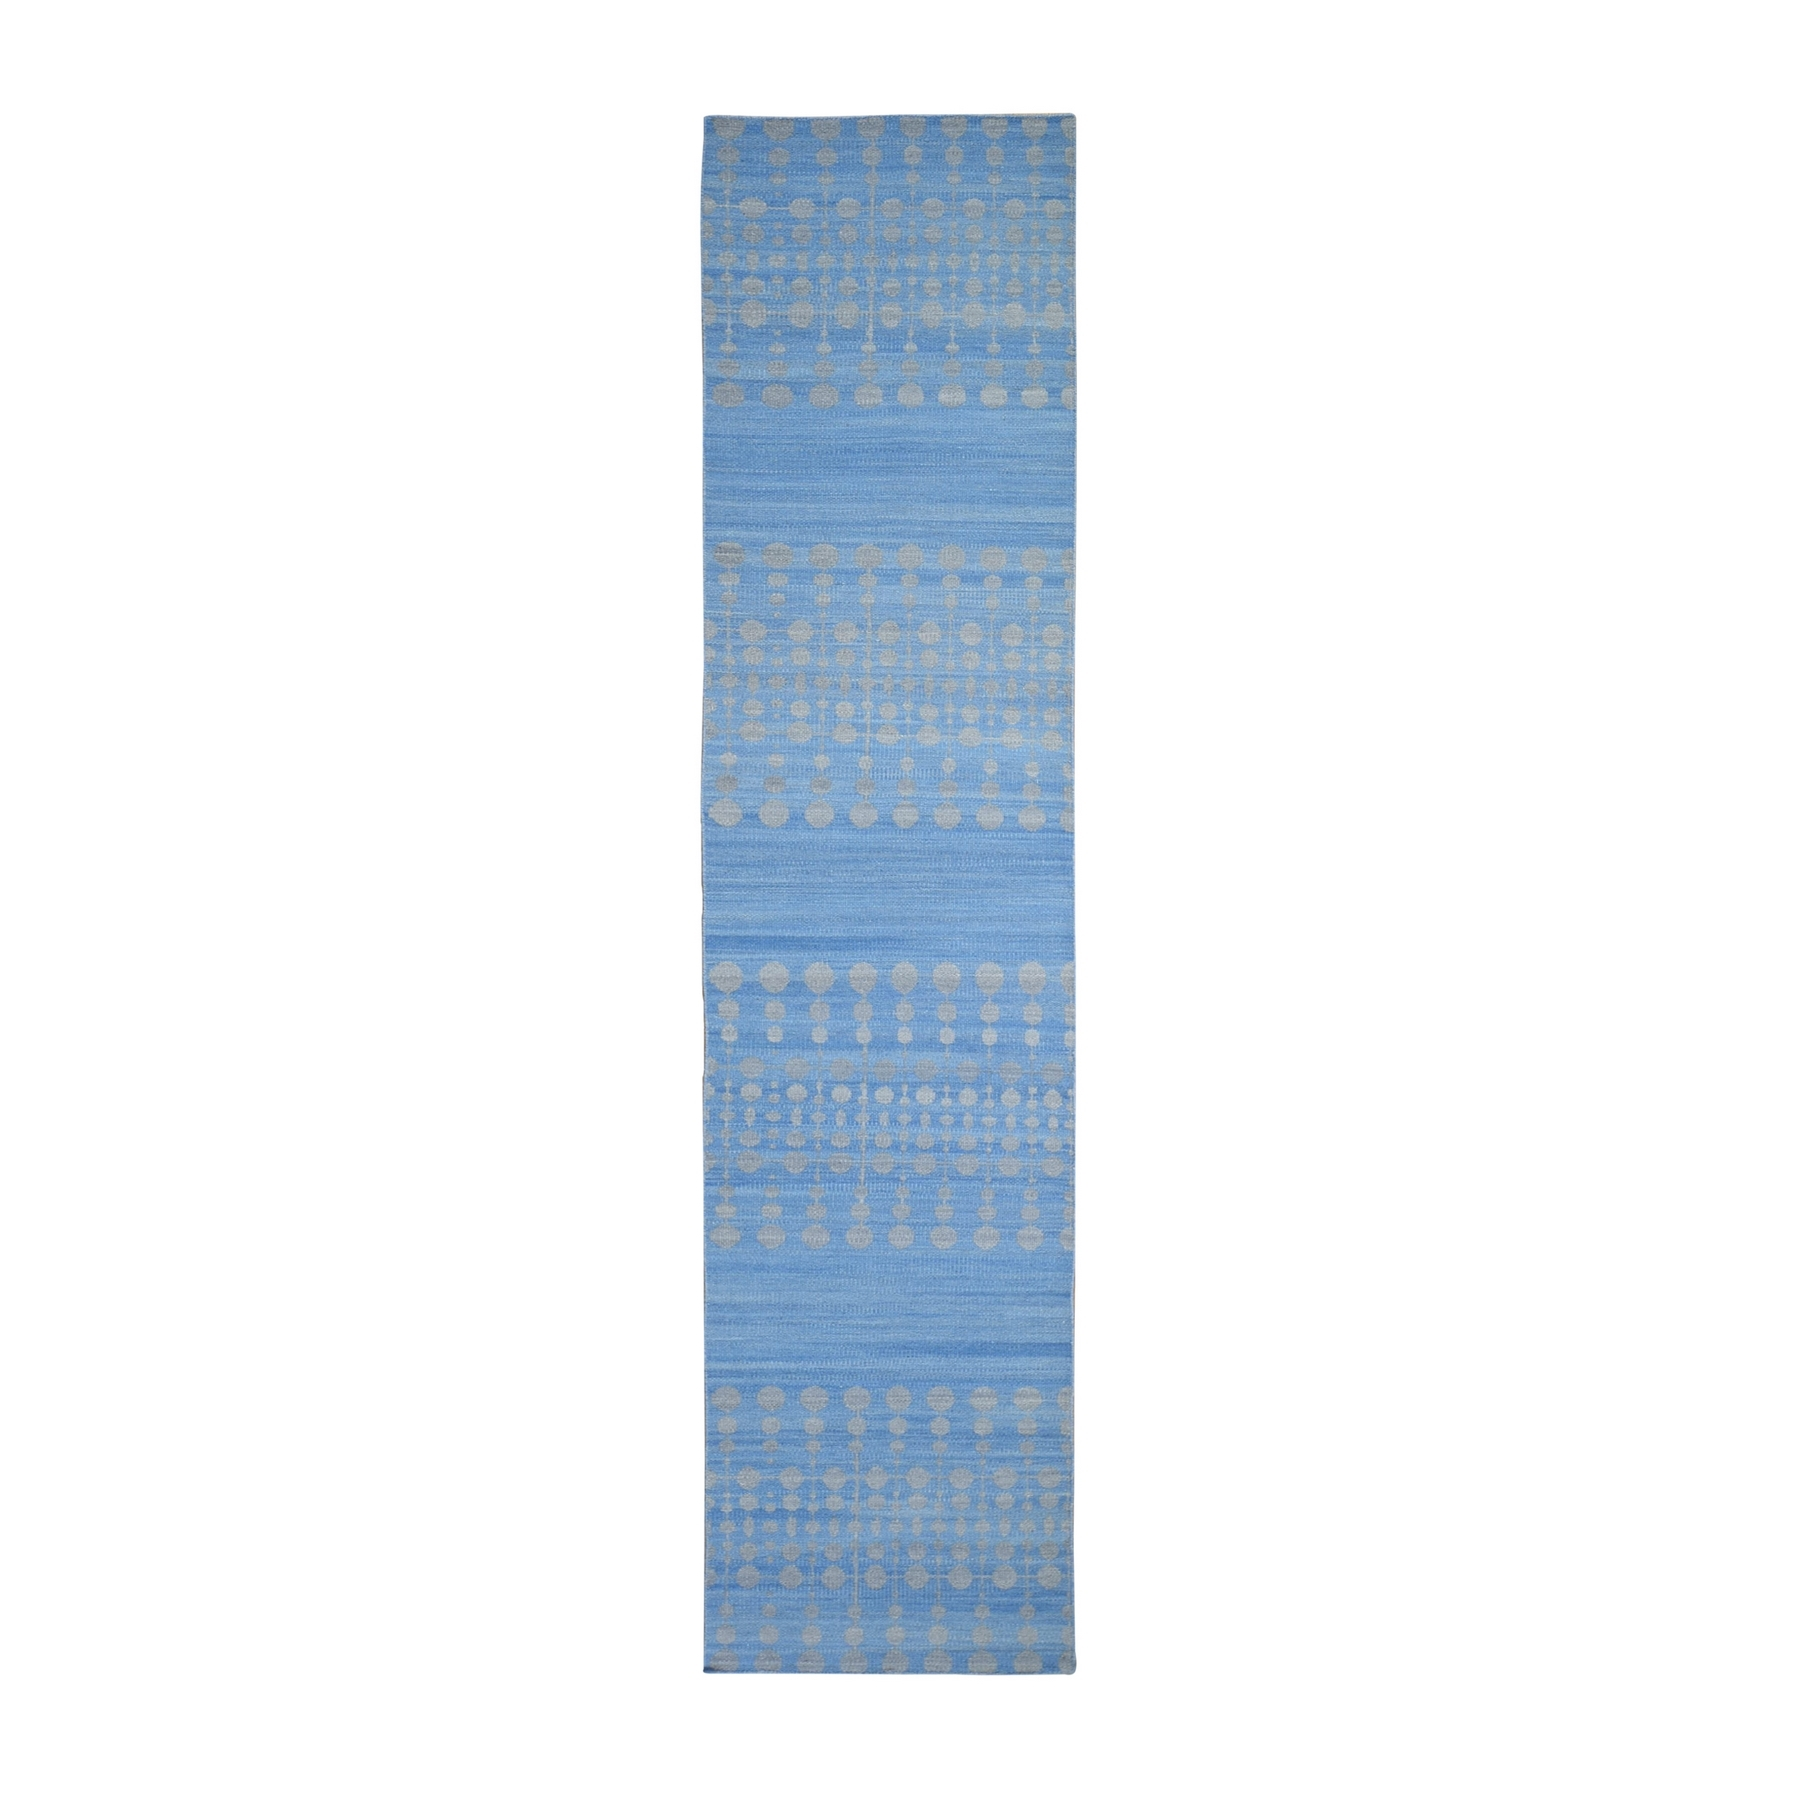 "2'8""x12' Hand Woven Flat Weave Pure Wool Light Blue Reversible Kilim Dot Design Runner Oriental Rug"